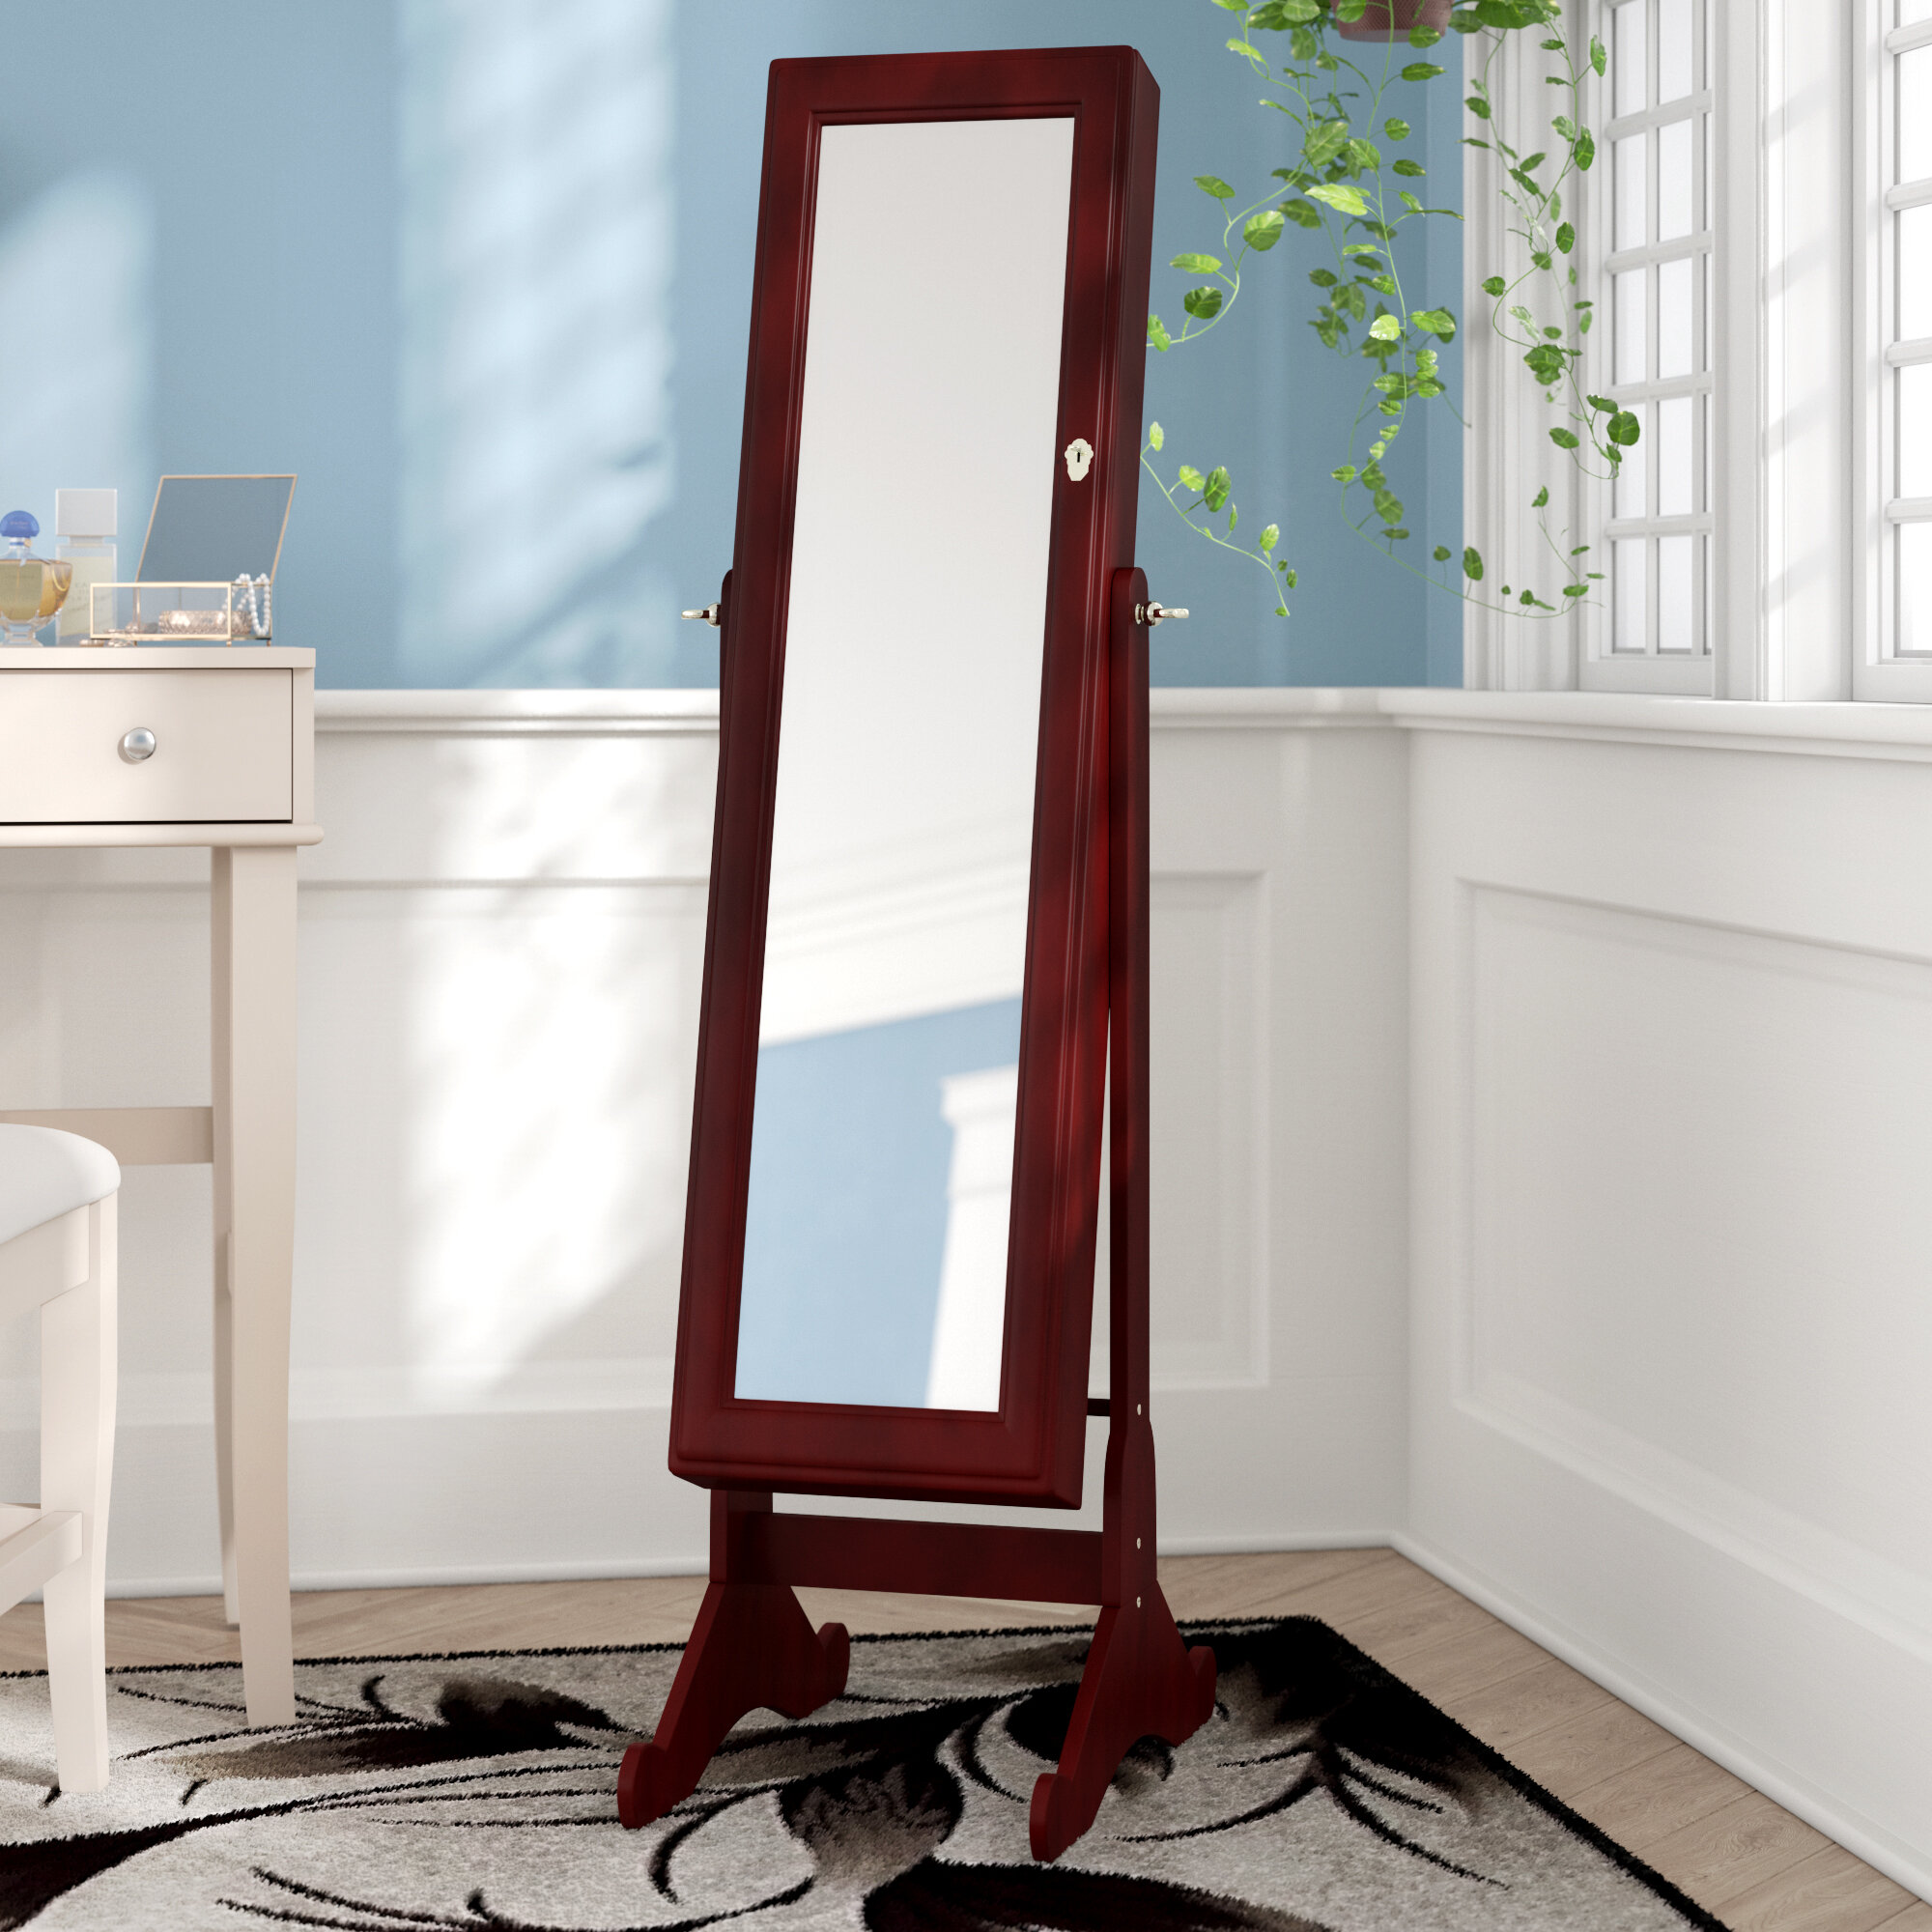 b8a0c1f65 Red Barrel Studio Free Standing Jewelry Armoire with Mirror & Reviews    Wayfair